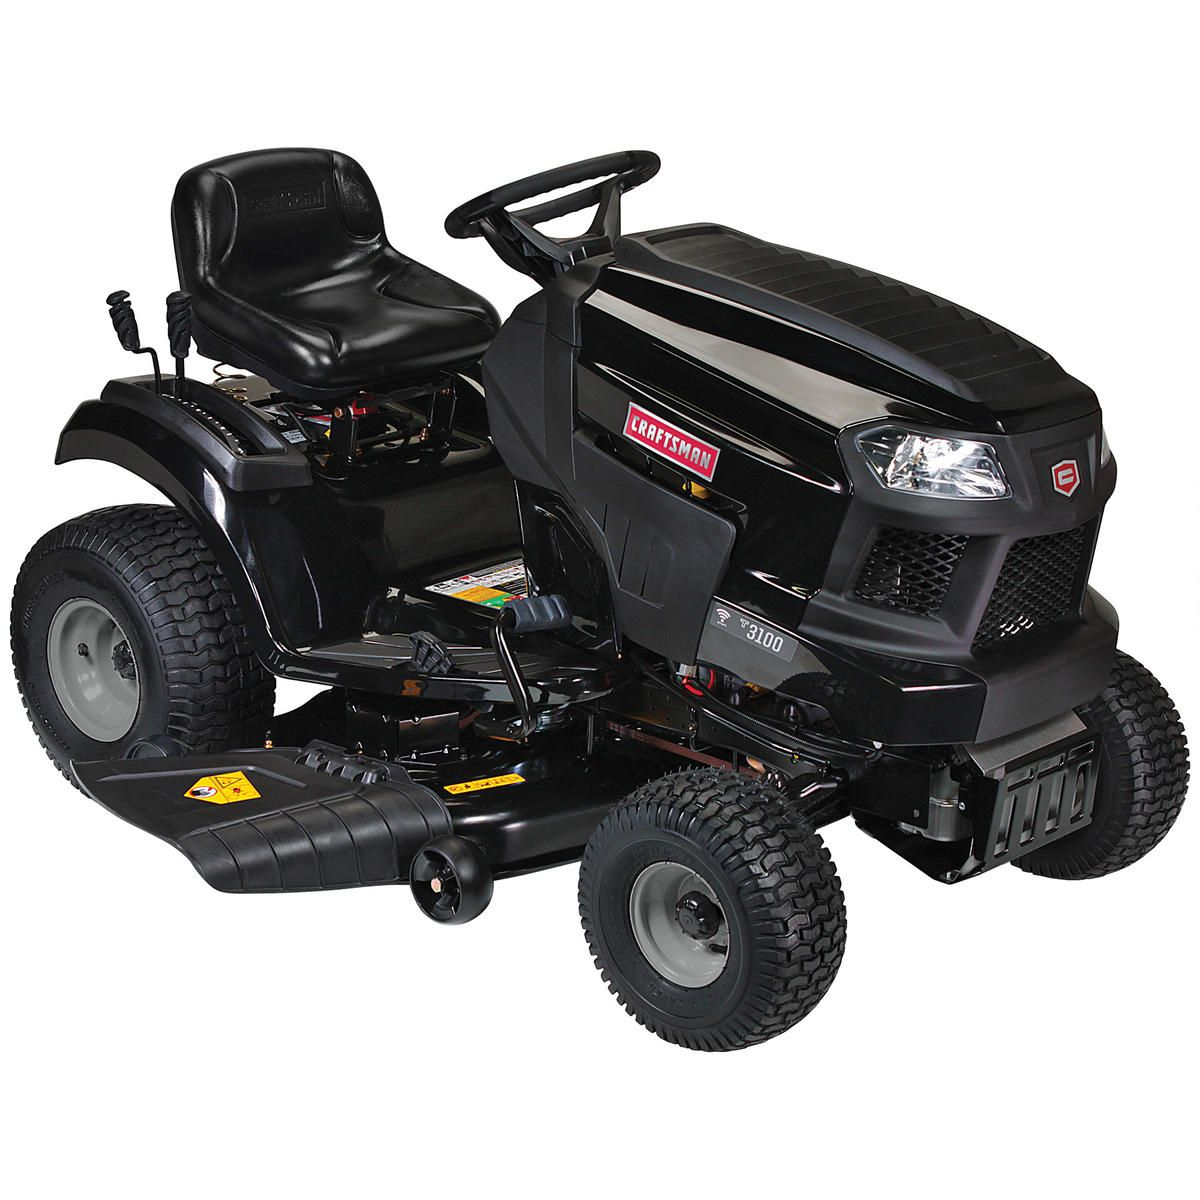 Craftsman 27334 54 24 Hp Briggs Stratton V Twin Riding Mower With Smart Lawn Technology Riding Mower Riding Mower